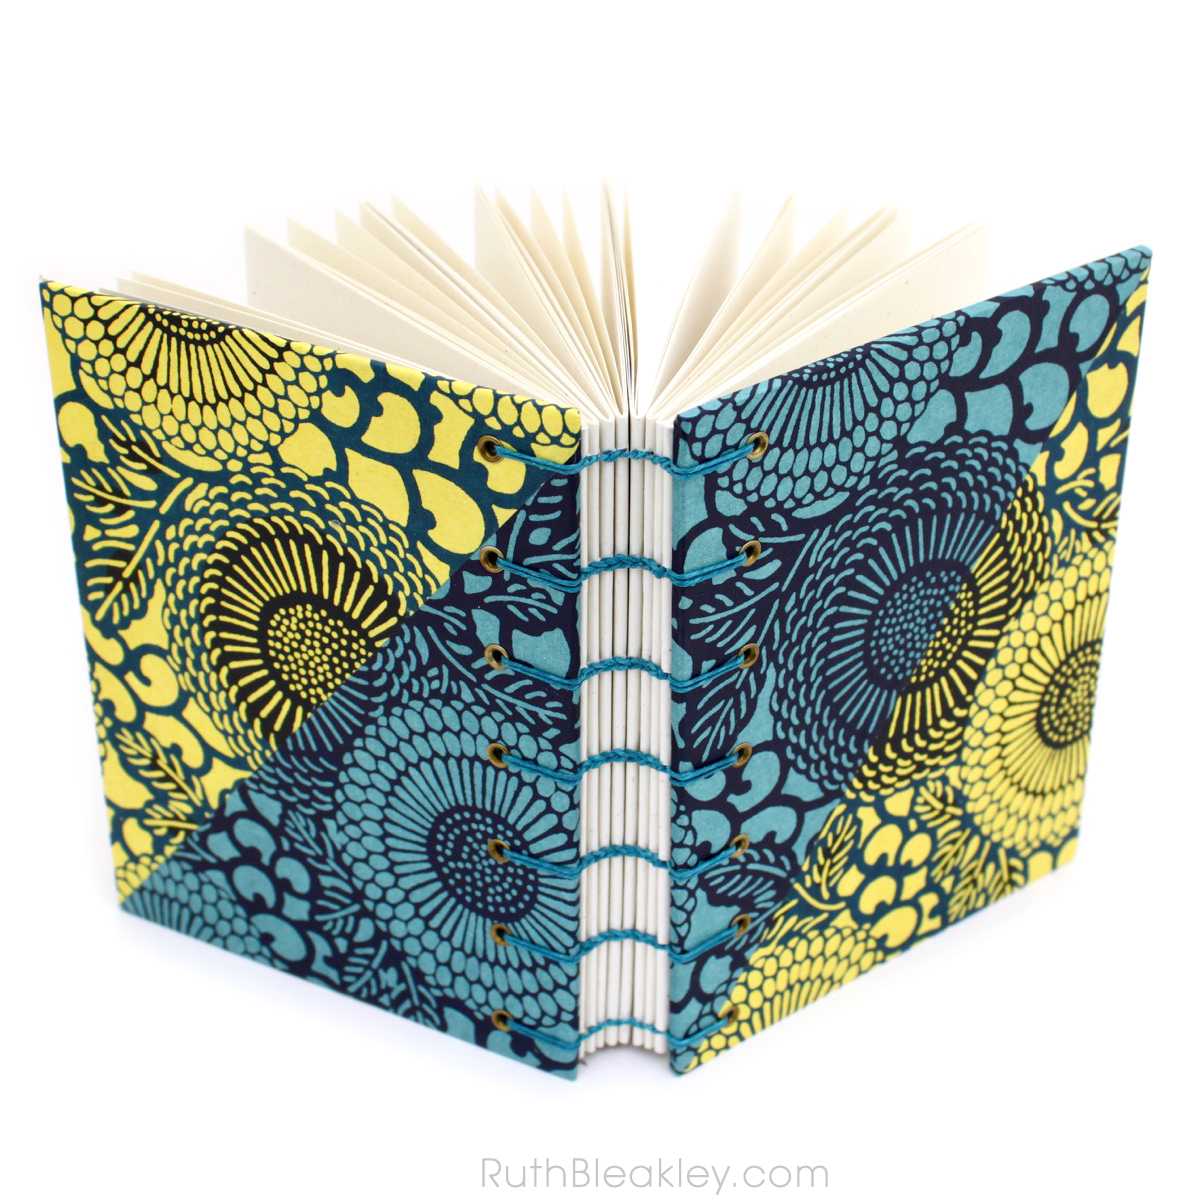 Katazome Blue and Yellow Flours Journal handbound by bookbinder Ruth Bleakley - 3